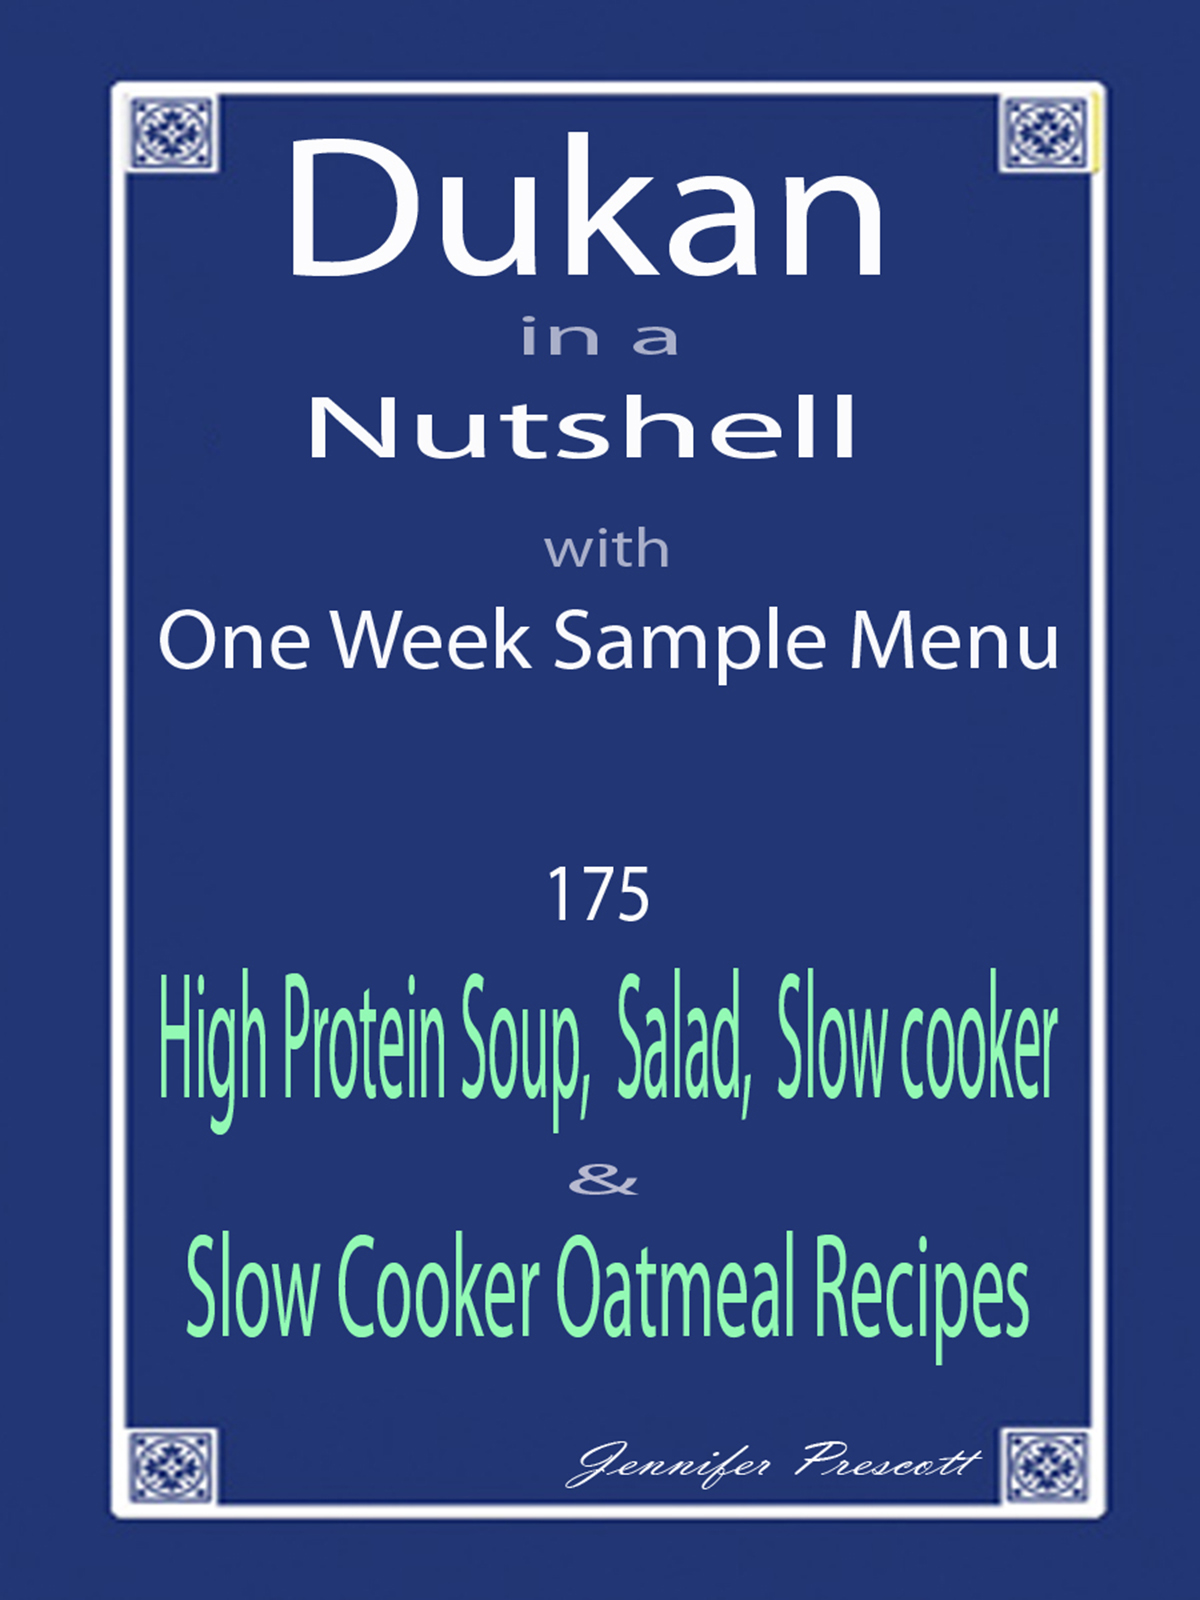 Dukan in a Nutshell with One week Sample Menu: 175 High Protein Soup, Salad, Slow cooker & Slow Cooker Oatmeal Recipes